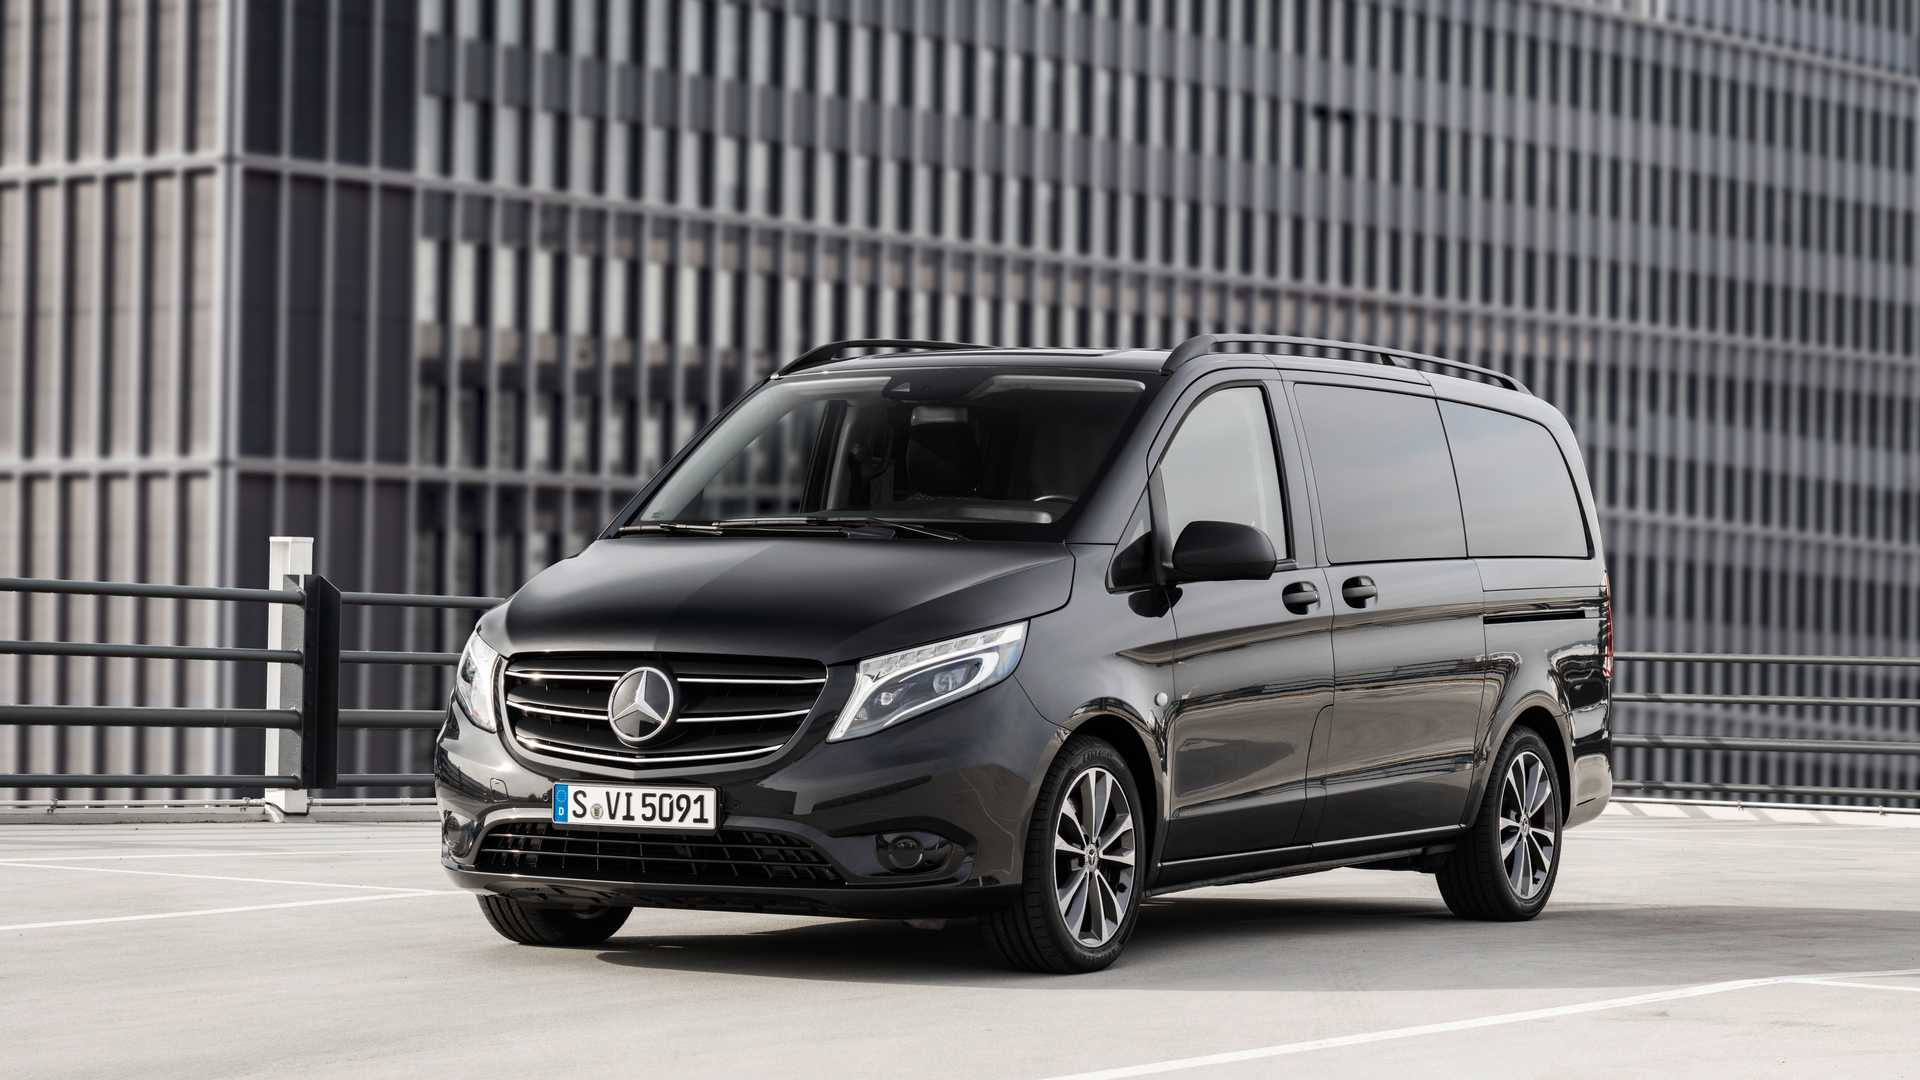 Mercedes-Benz Vito receives an update internally and externally with refreshing design, features, safety and technology that meets customers demands